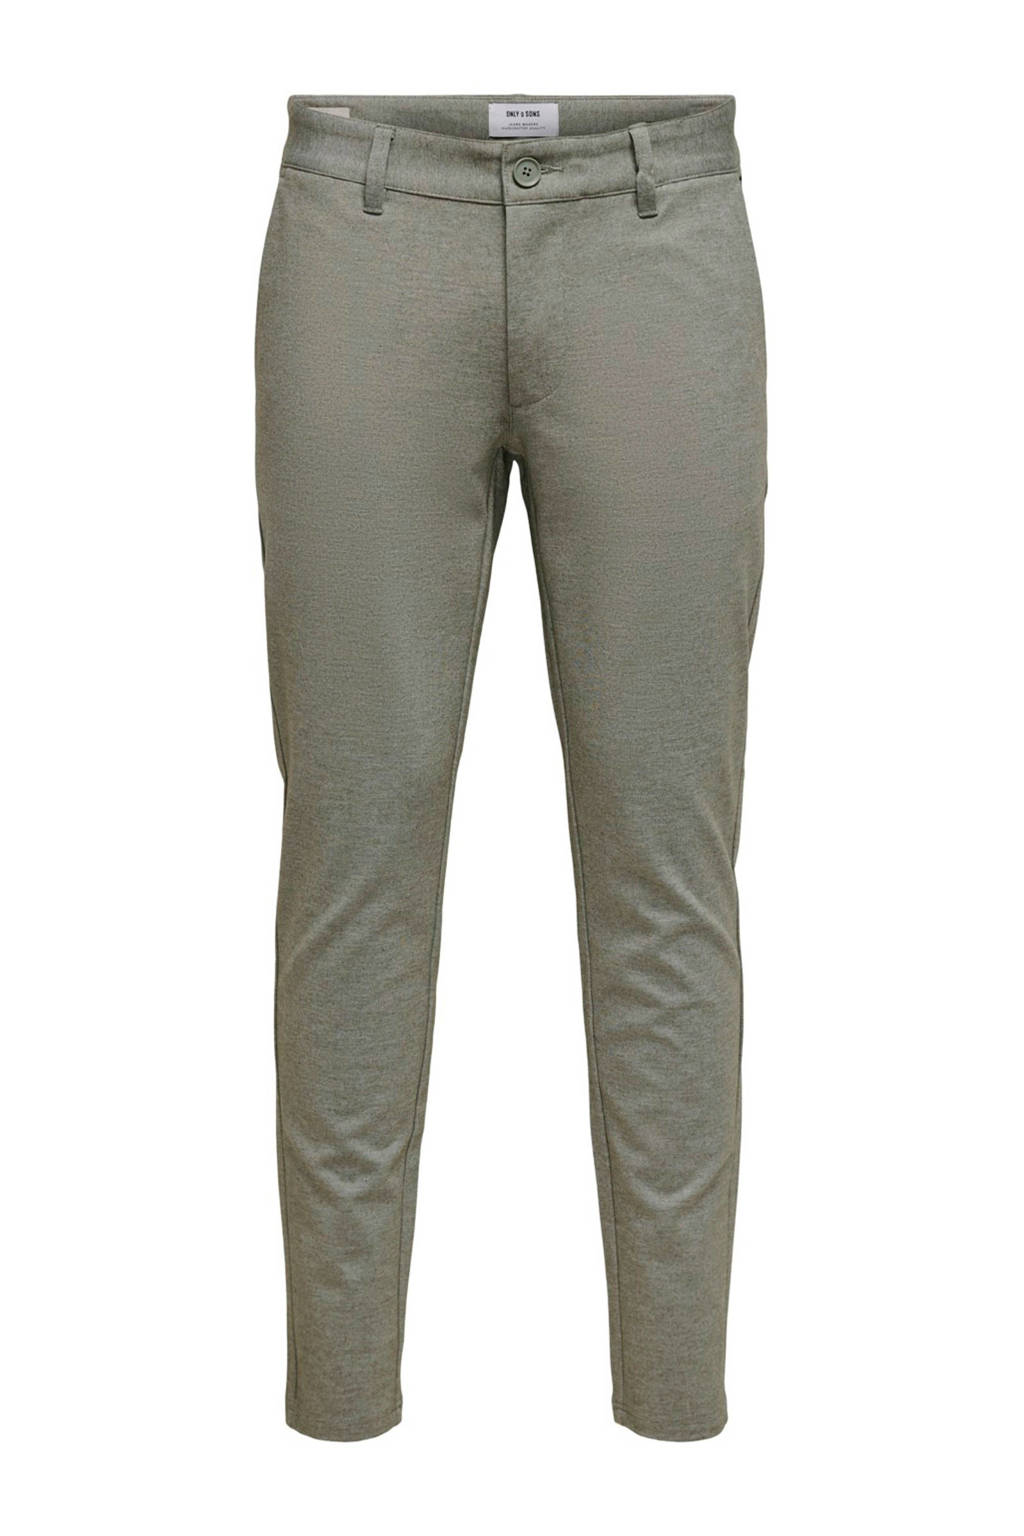 ONLY & SONS slim fit chino groen, Groen